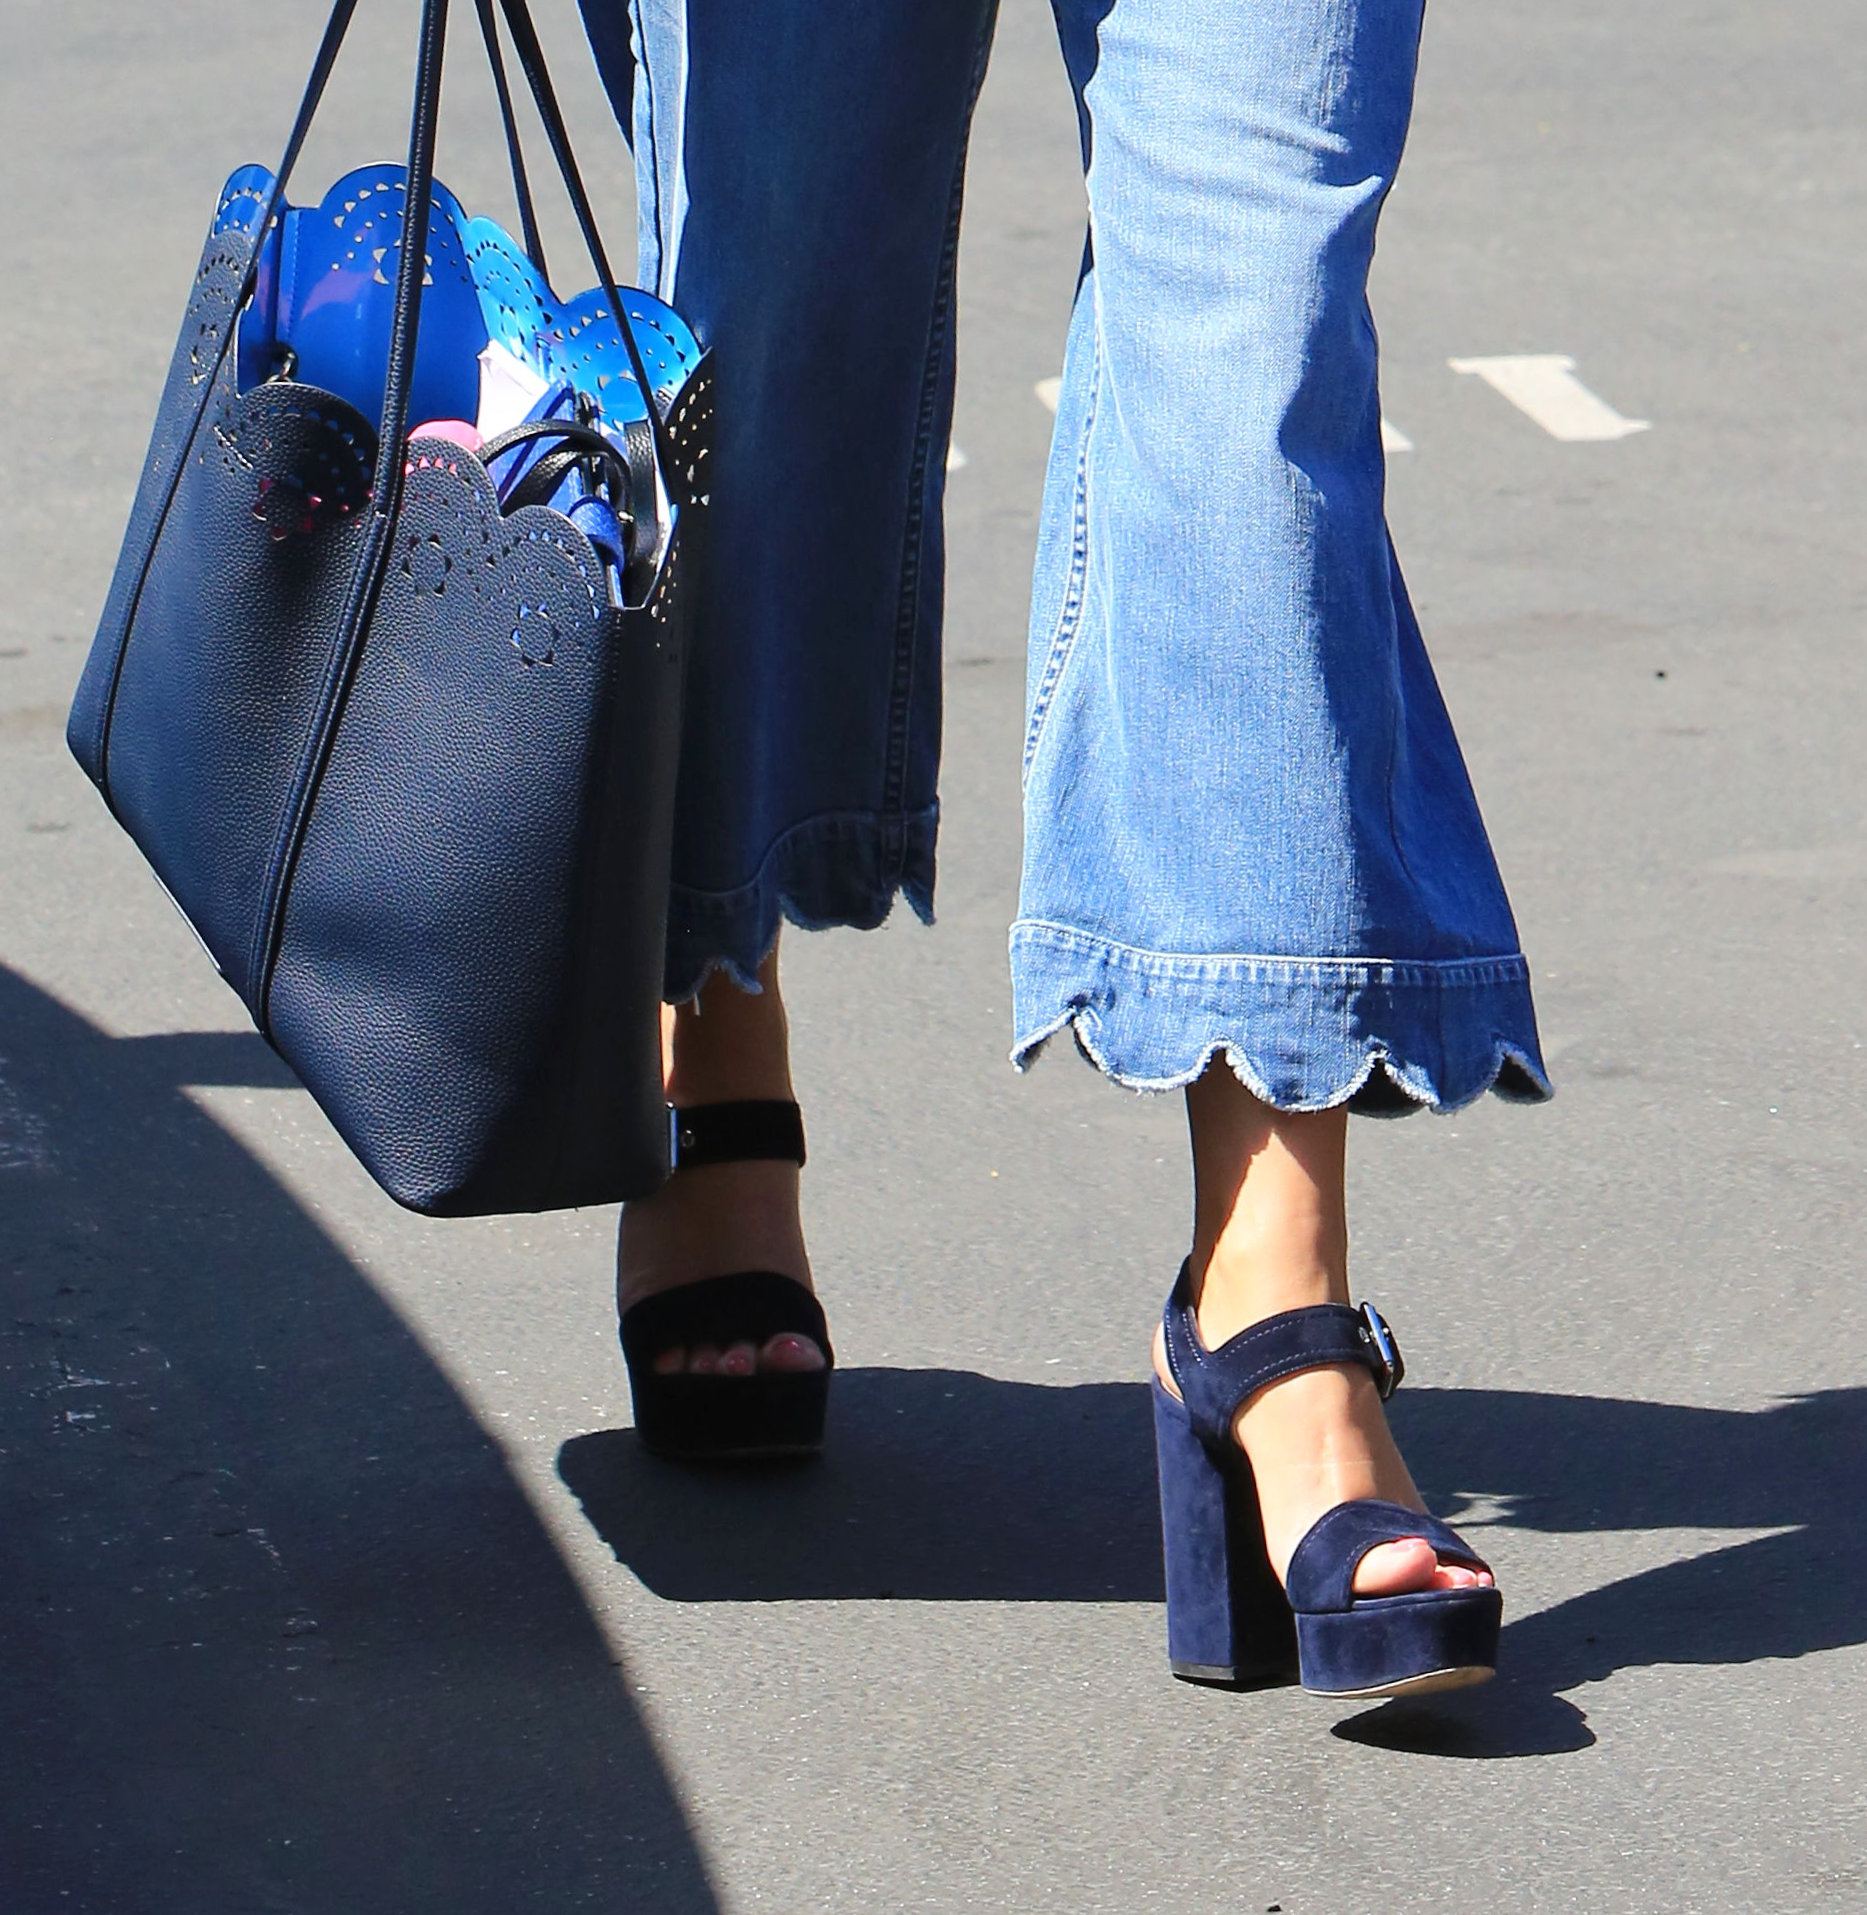 Monday, April 16, 2018 - Reese Withherspoon flashes a smile as she heads into work at the studio Monday morning in Brentwood, CA after filming scenes for Season 2 of her hit show 'Big Little Lies' late last week. Witherspoon looks sharp in a navy blazer, navy pussy bow blows and flared, wide-legged blue jeans, paired with navy heels. -  X17online.com